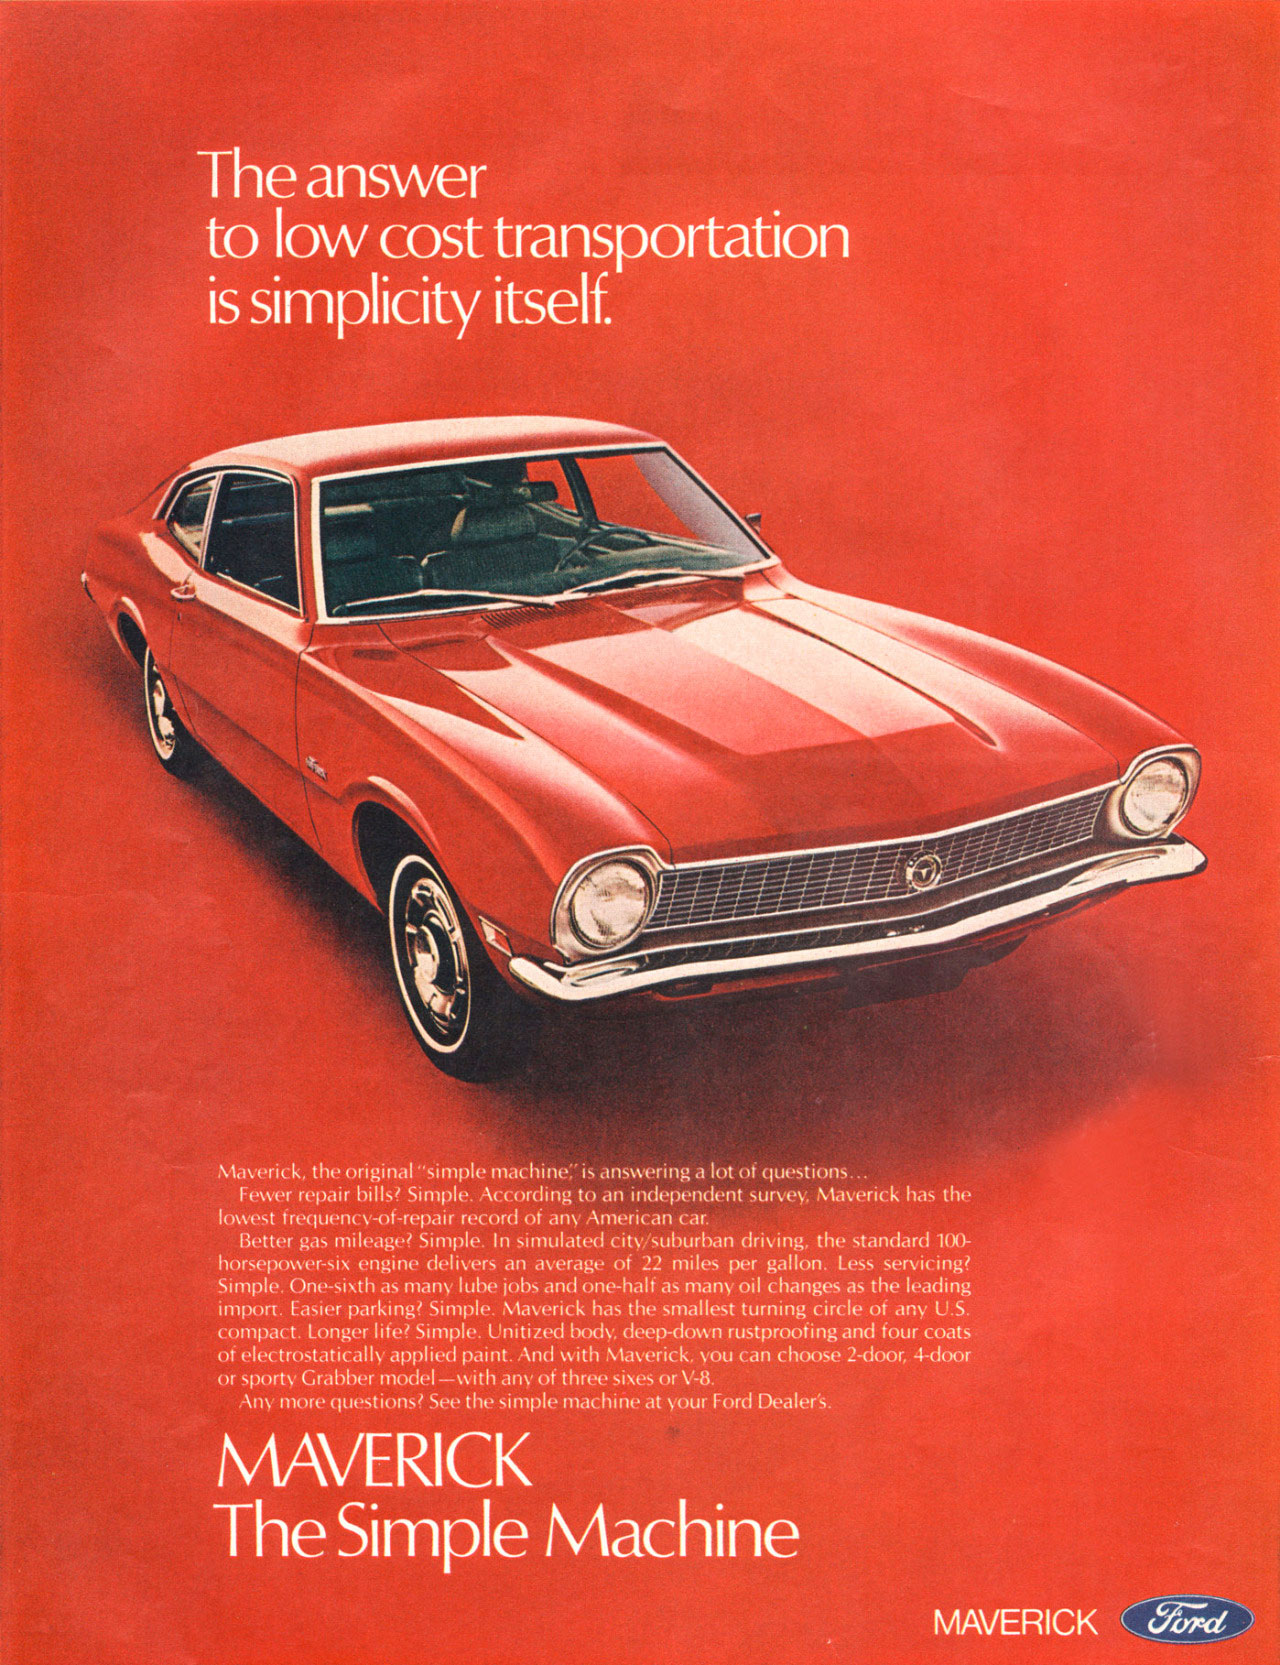 The answer to low cost transportation is simplicity itself. Ford Maverick. The Simple Machine. Maverick, the original ''simple machine:' is answering a lot of questions... Fewer repair bills? Simple. According to an independent survey, Maverick has the lowest frequency-of-repair record of any American car. Better gas mileage? Simple. In simulated city/suburban driving, the standard 100-horsepower-six engine delivers an average of 22 miles per gallon. Less servicing? Simple. One-sixth as many lube jobs and one-half as many oil changes as the leading import. Easier parking? Simple. Maverick has the smallest turning circle of any U.S. compact. Longer life? Simple. Unitized body, deep-down rustproofing and four coats of electrostatically applied paint. And with Maverick, you can choose 2-door, 4-door or sporty Grabber model —with any of three sixes or V-8. Any more questions? See the simple machine at your Ford Dealer's.  MAVERICK The Simple Machine  MAVERICK CcViTed )